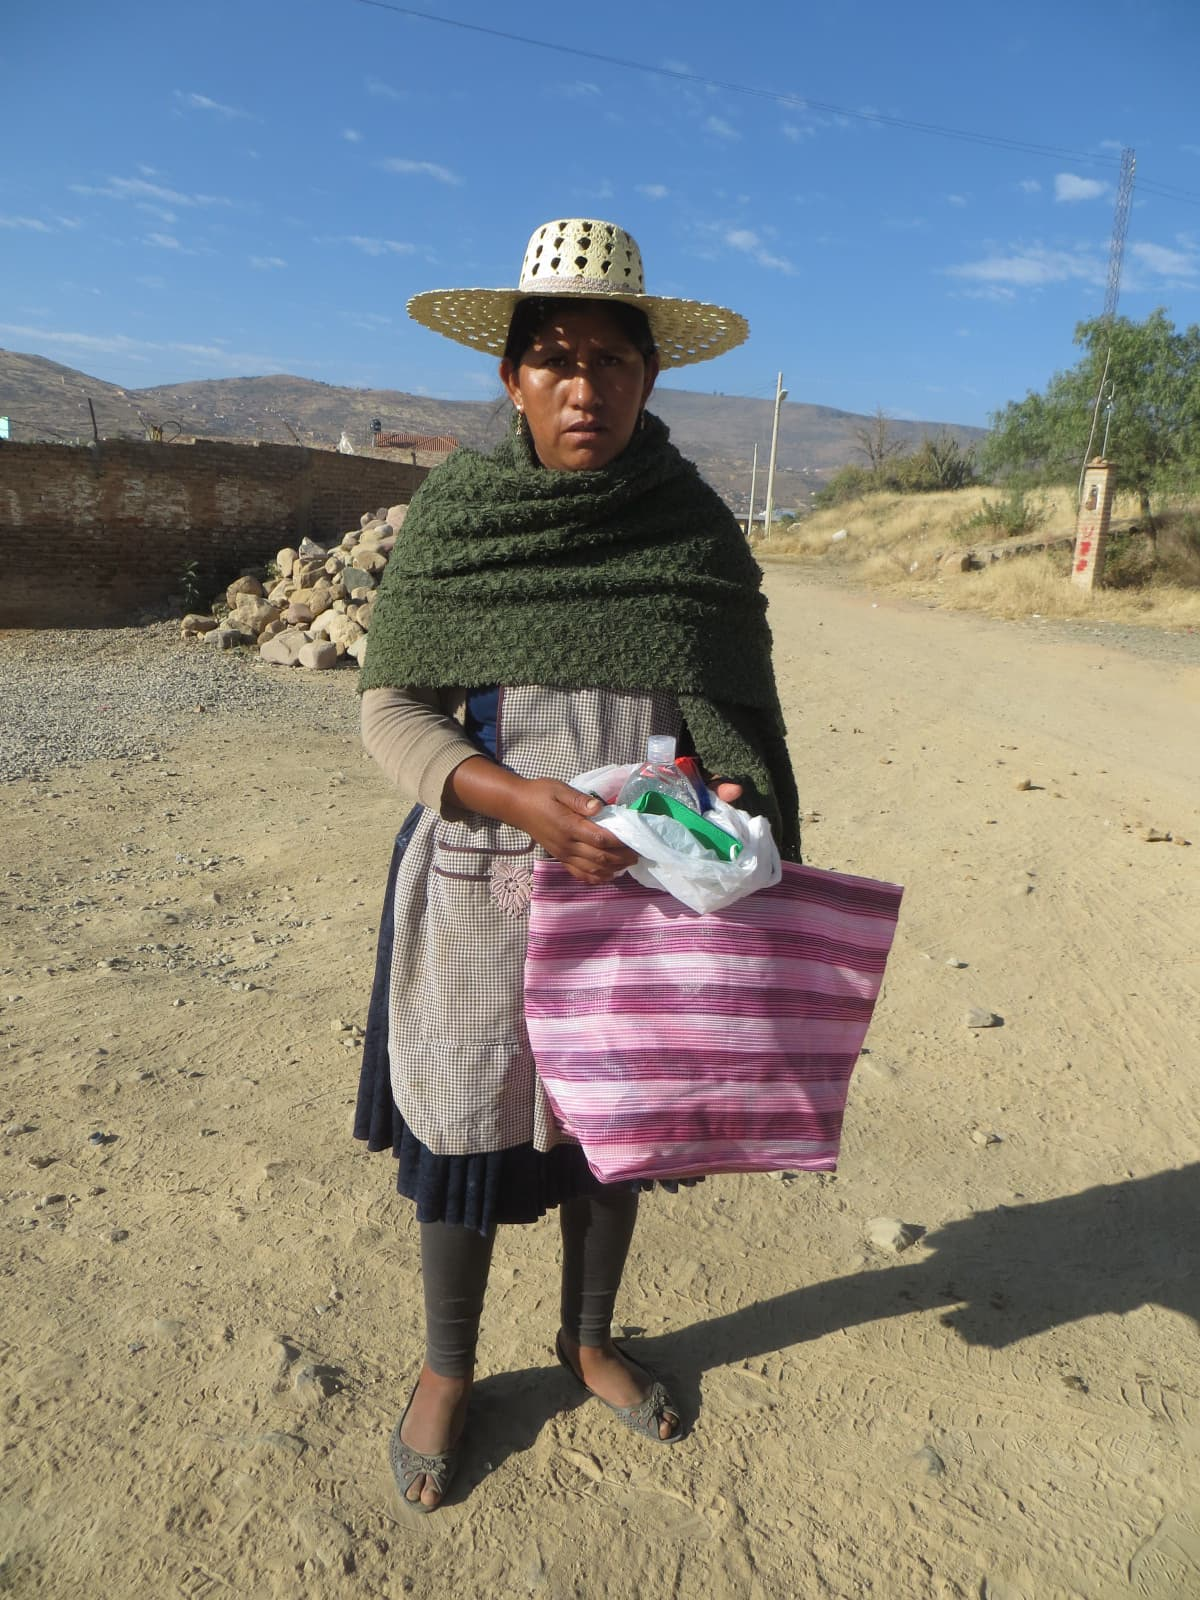 A Bolivan woman, wearing a traditional hat, holds a bag containing a hygiene kit. She stands outside.